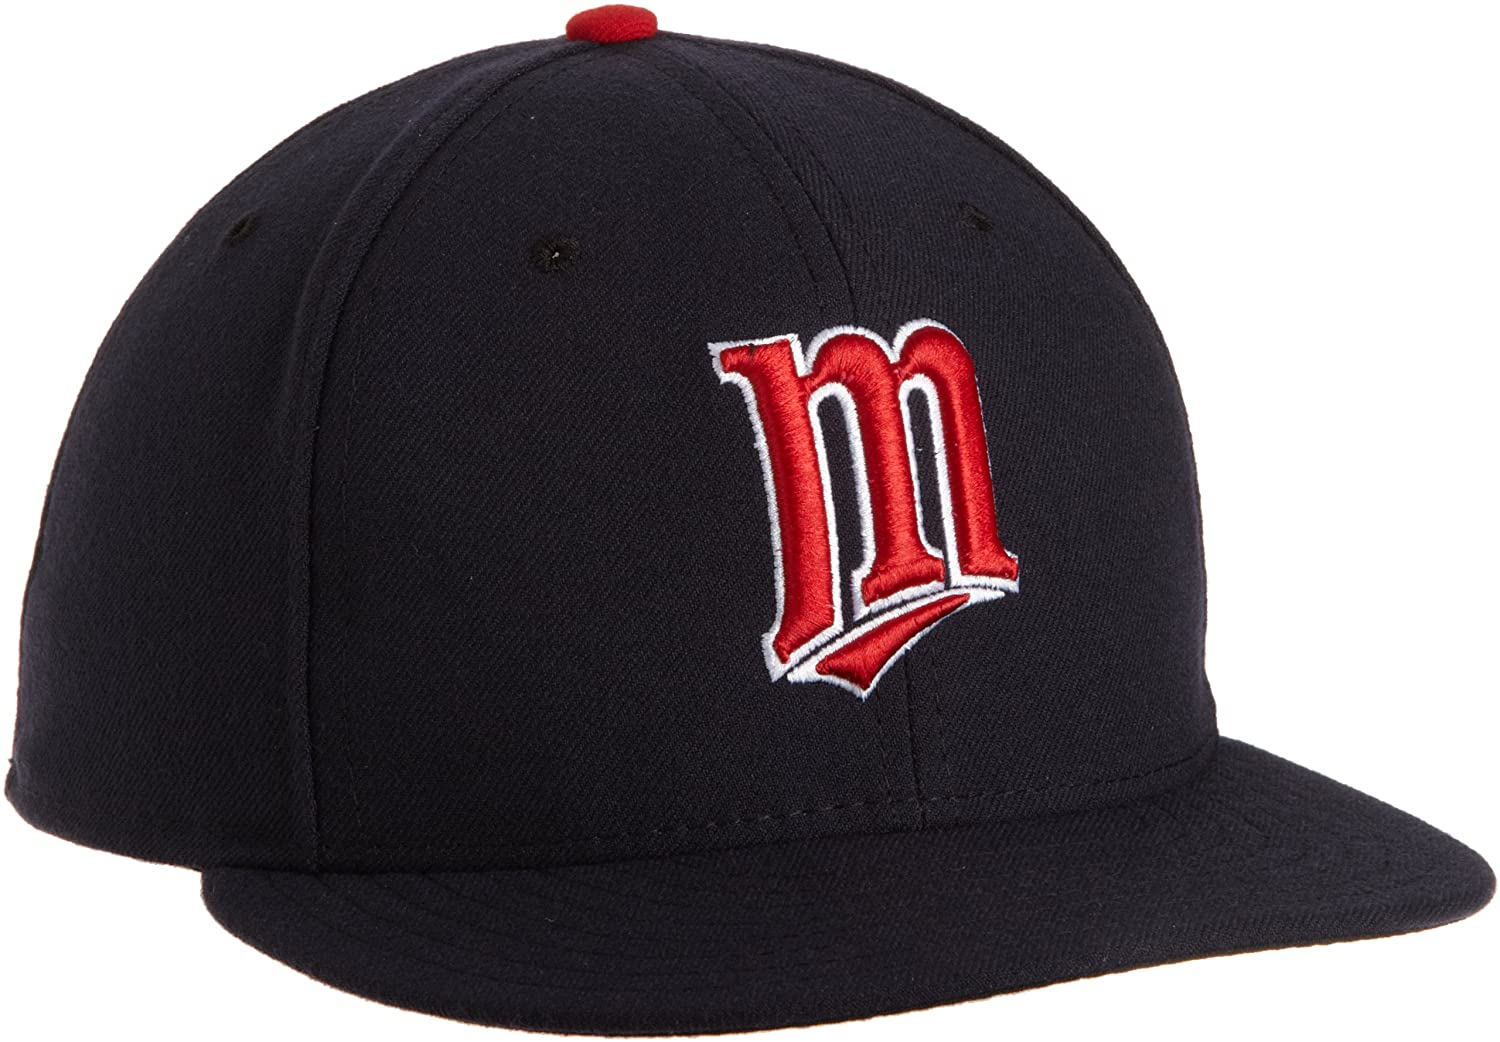 on sale 0e42e 89e75 Amazon.com   MLB Minnesota Twins Authentic On Field Alternate 59Fifty  Fitted Cap   Sports Fan Baseball Caps   Clothing